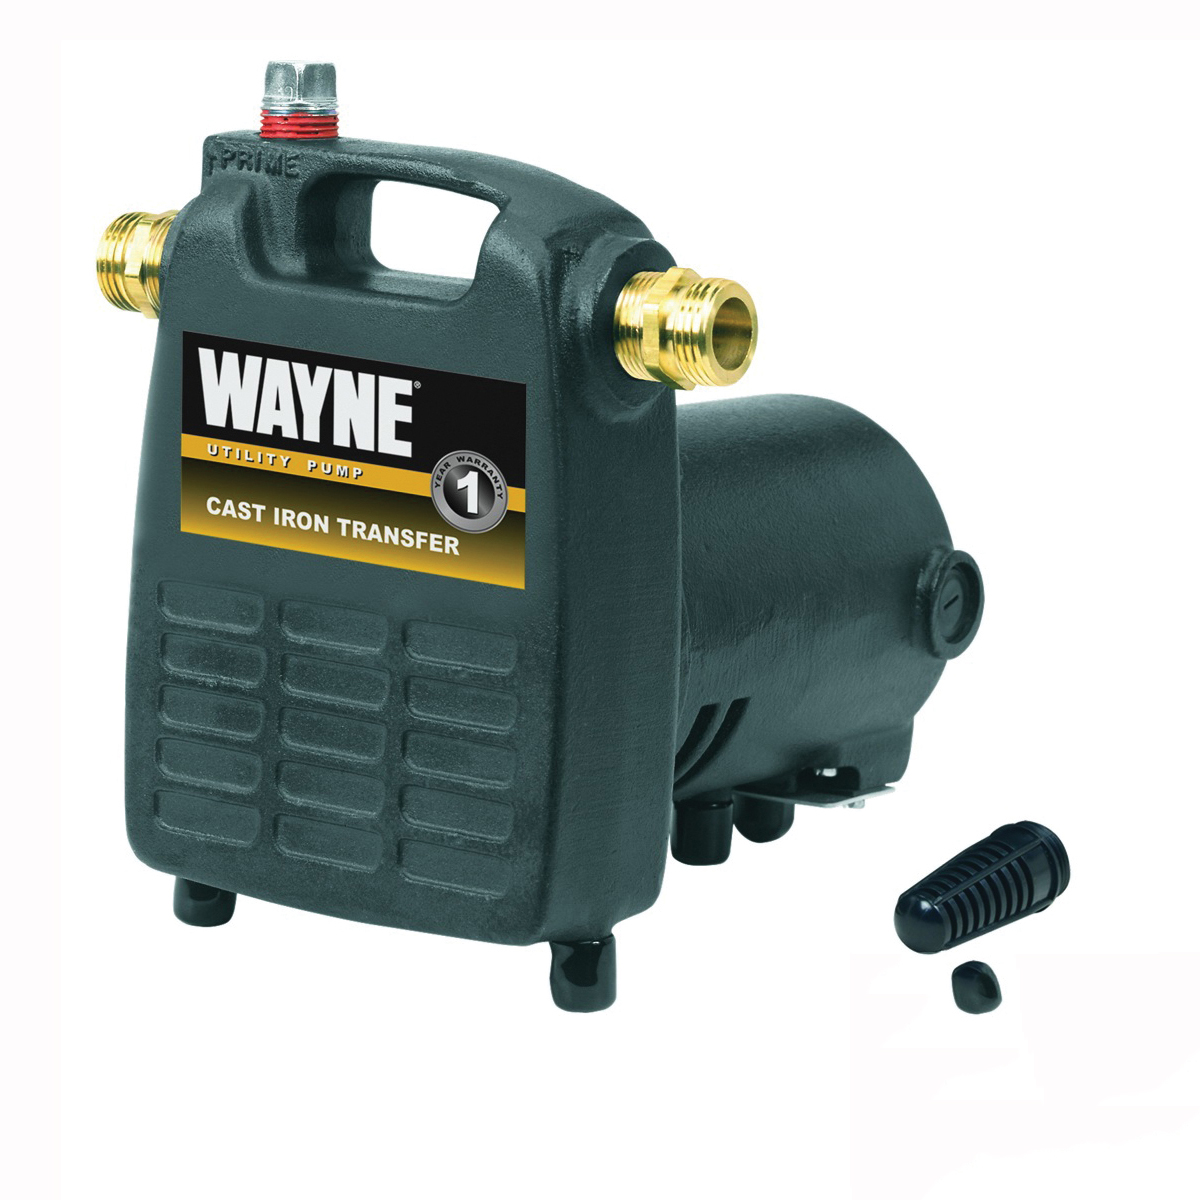 Picture of WAYNE PC4 Utility Pump, 1-Phase, 8 A, 120 V, 0.5 hp, 3/4 in Outlet, 1600 gph, Thermoplastic Impeller, Iron